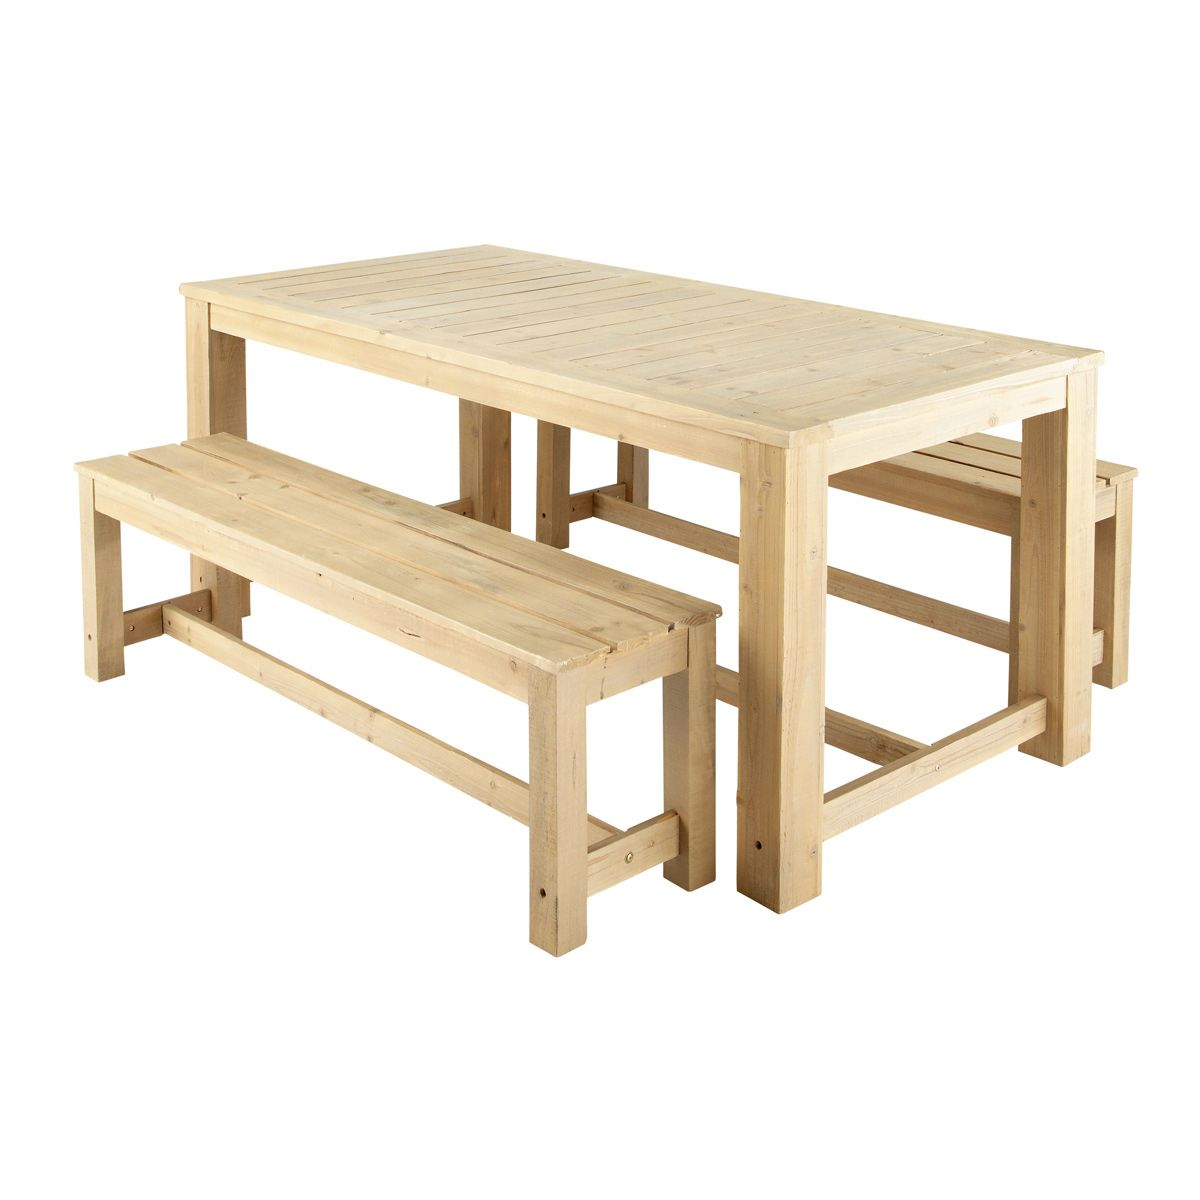 Wooden garden table + 2 benches W 180cm is part of Wooden garden Table -